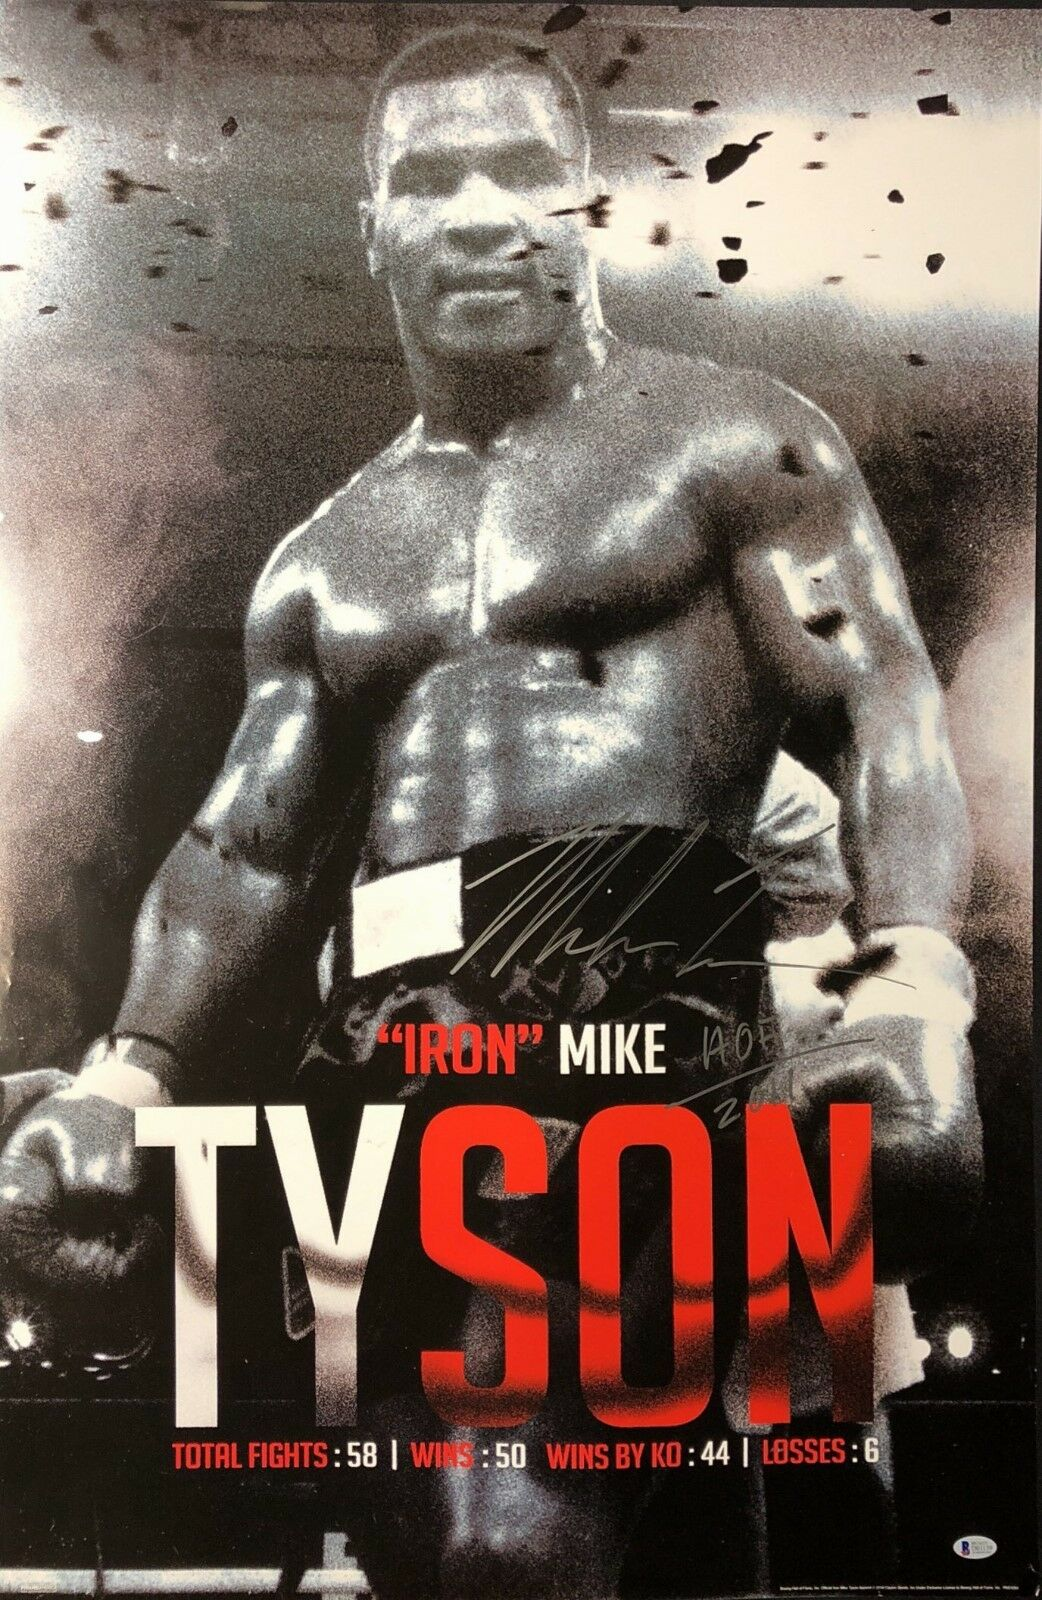 Mike Tyson Signed 24x36 'Iron Mike' Boxing Poster